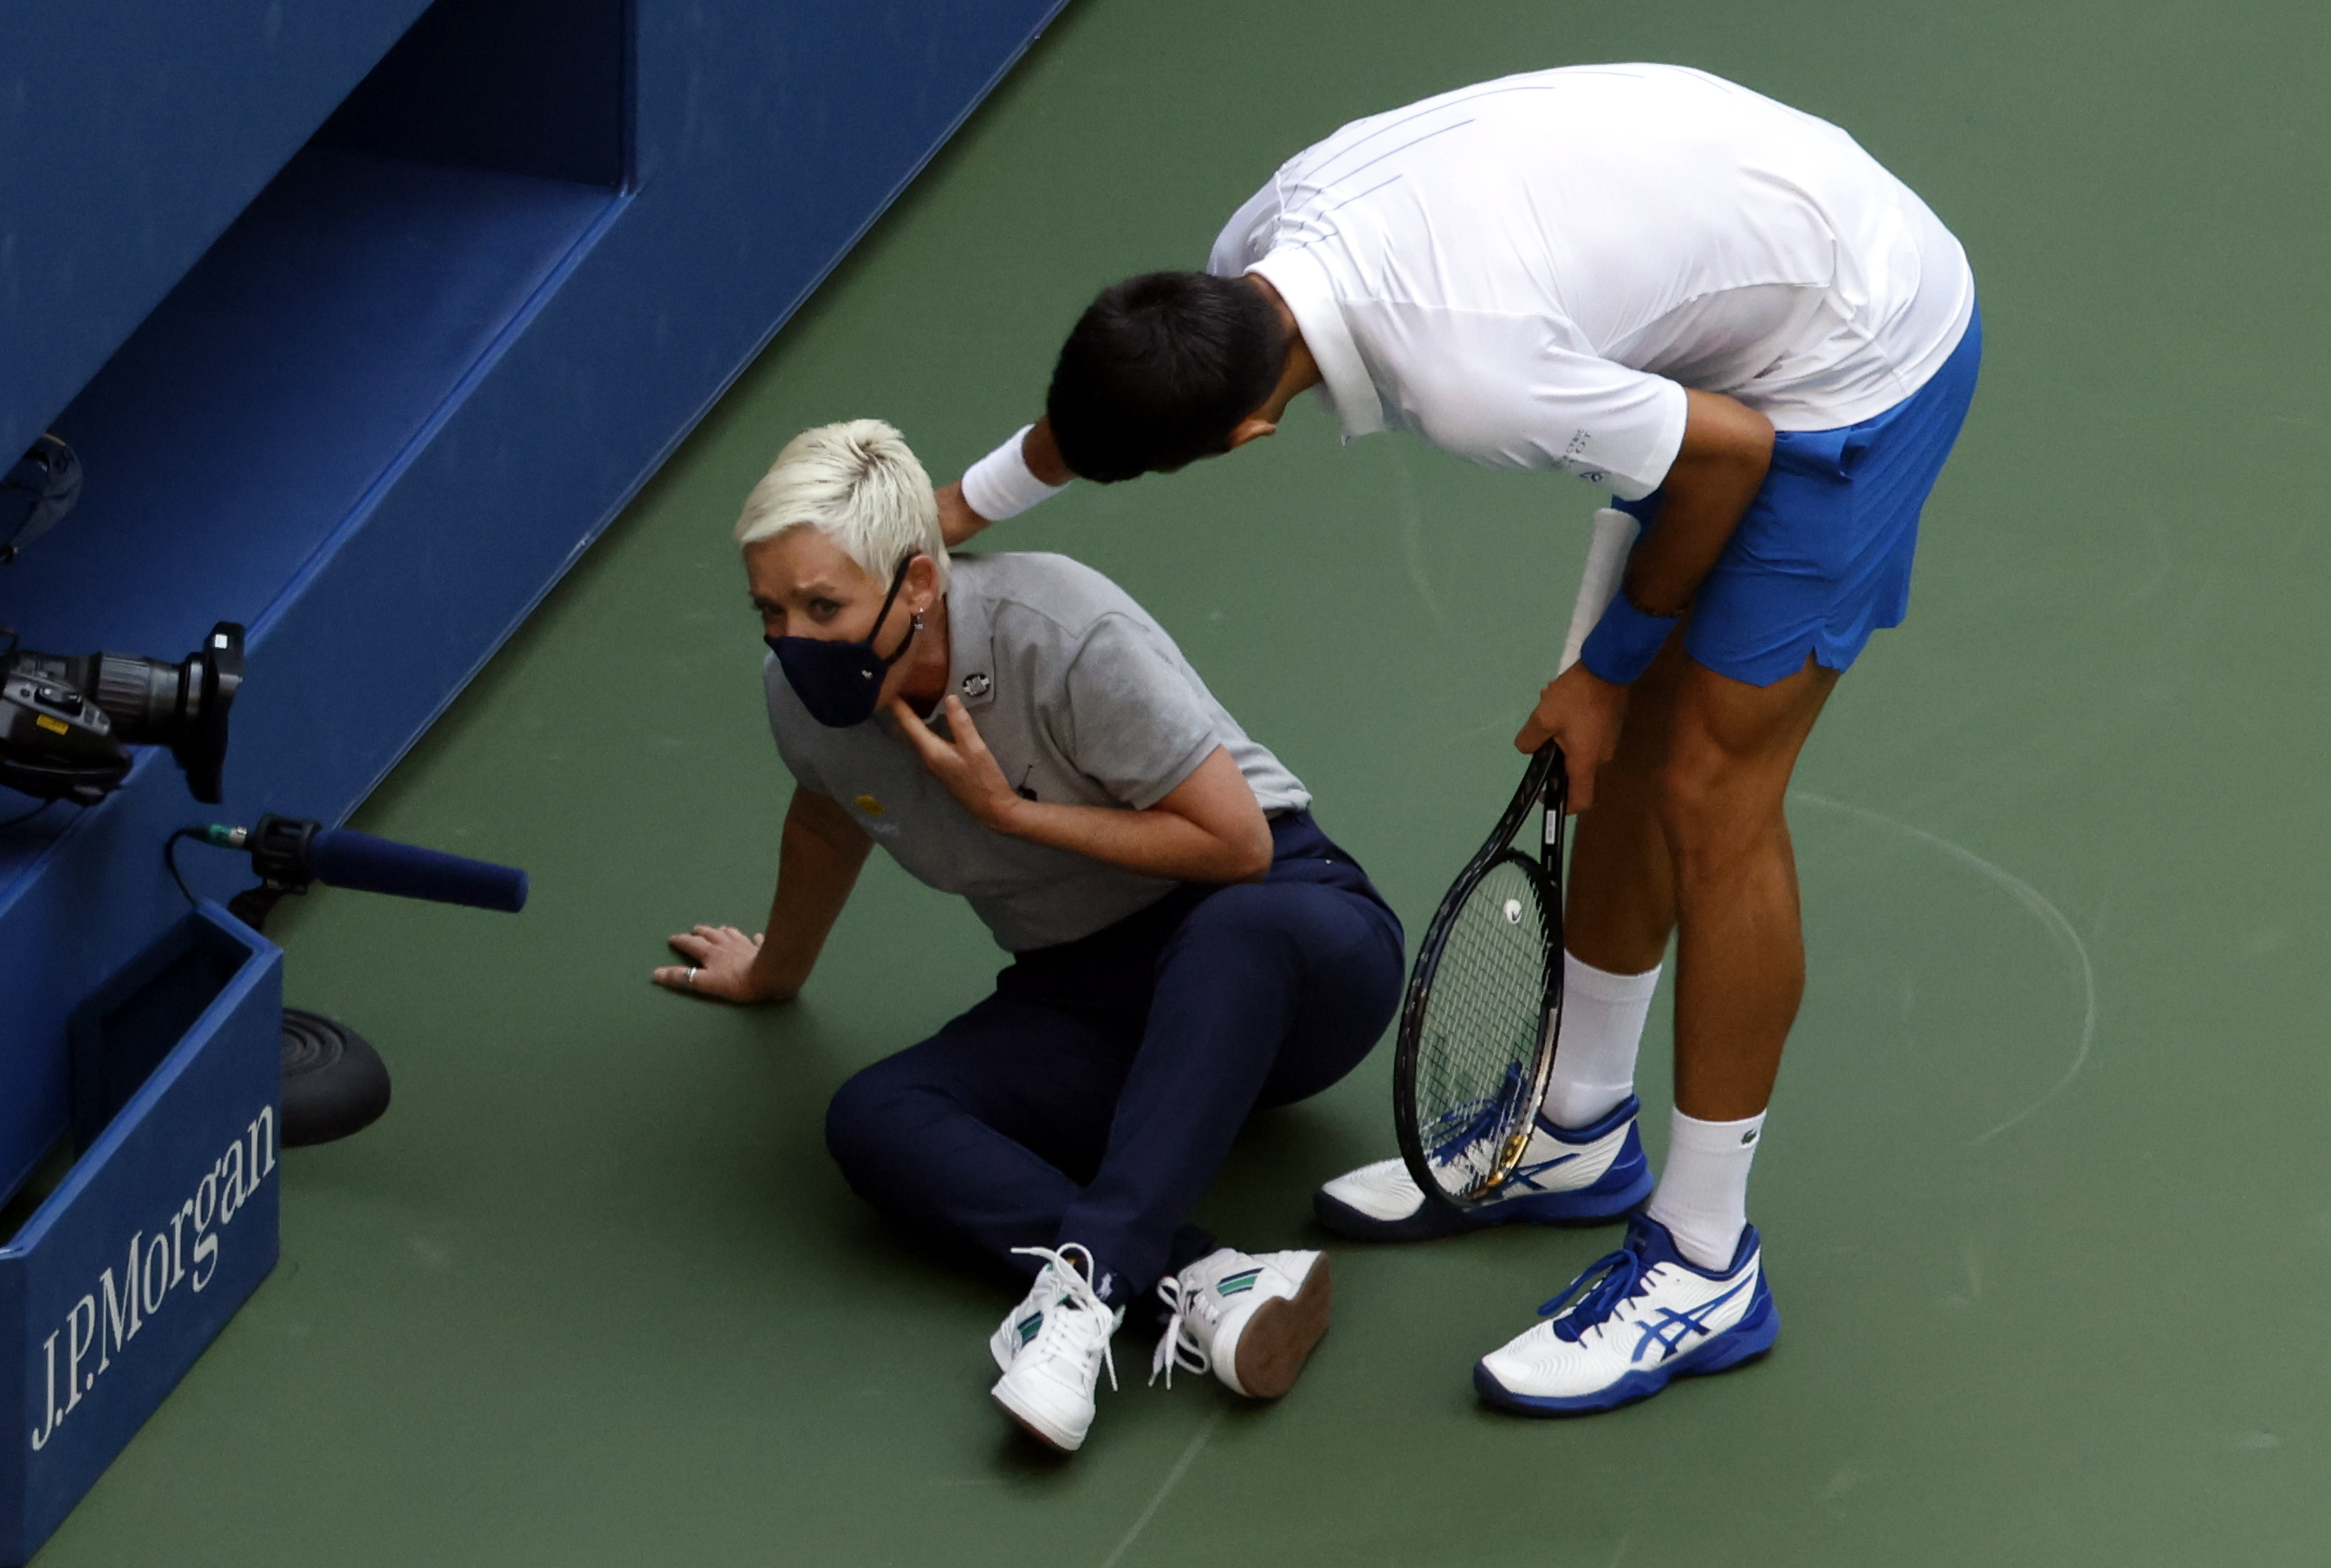 Novak Djokovic Out Of U S Open After Unintentionally Hitting Judge With Ball National Globalnews Ca